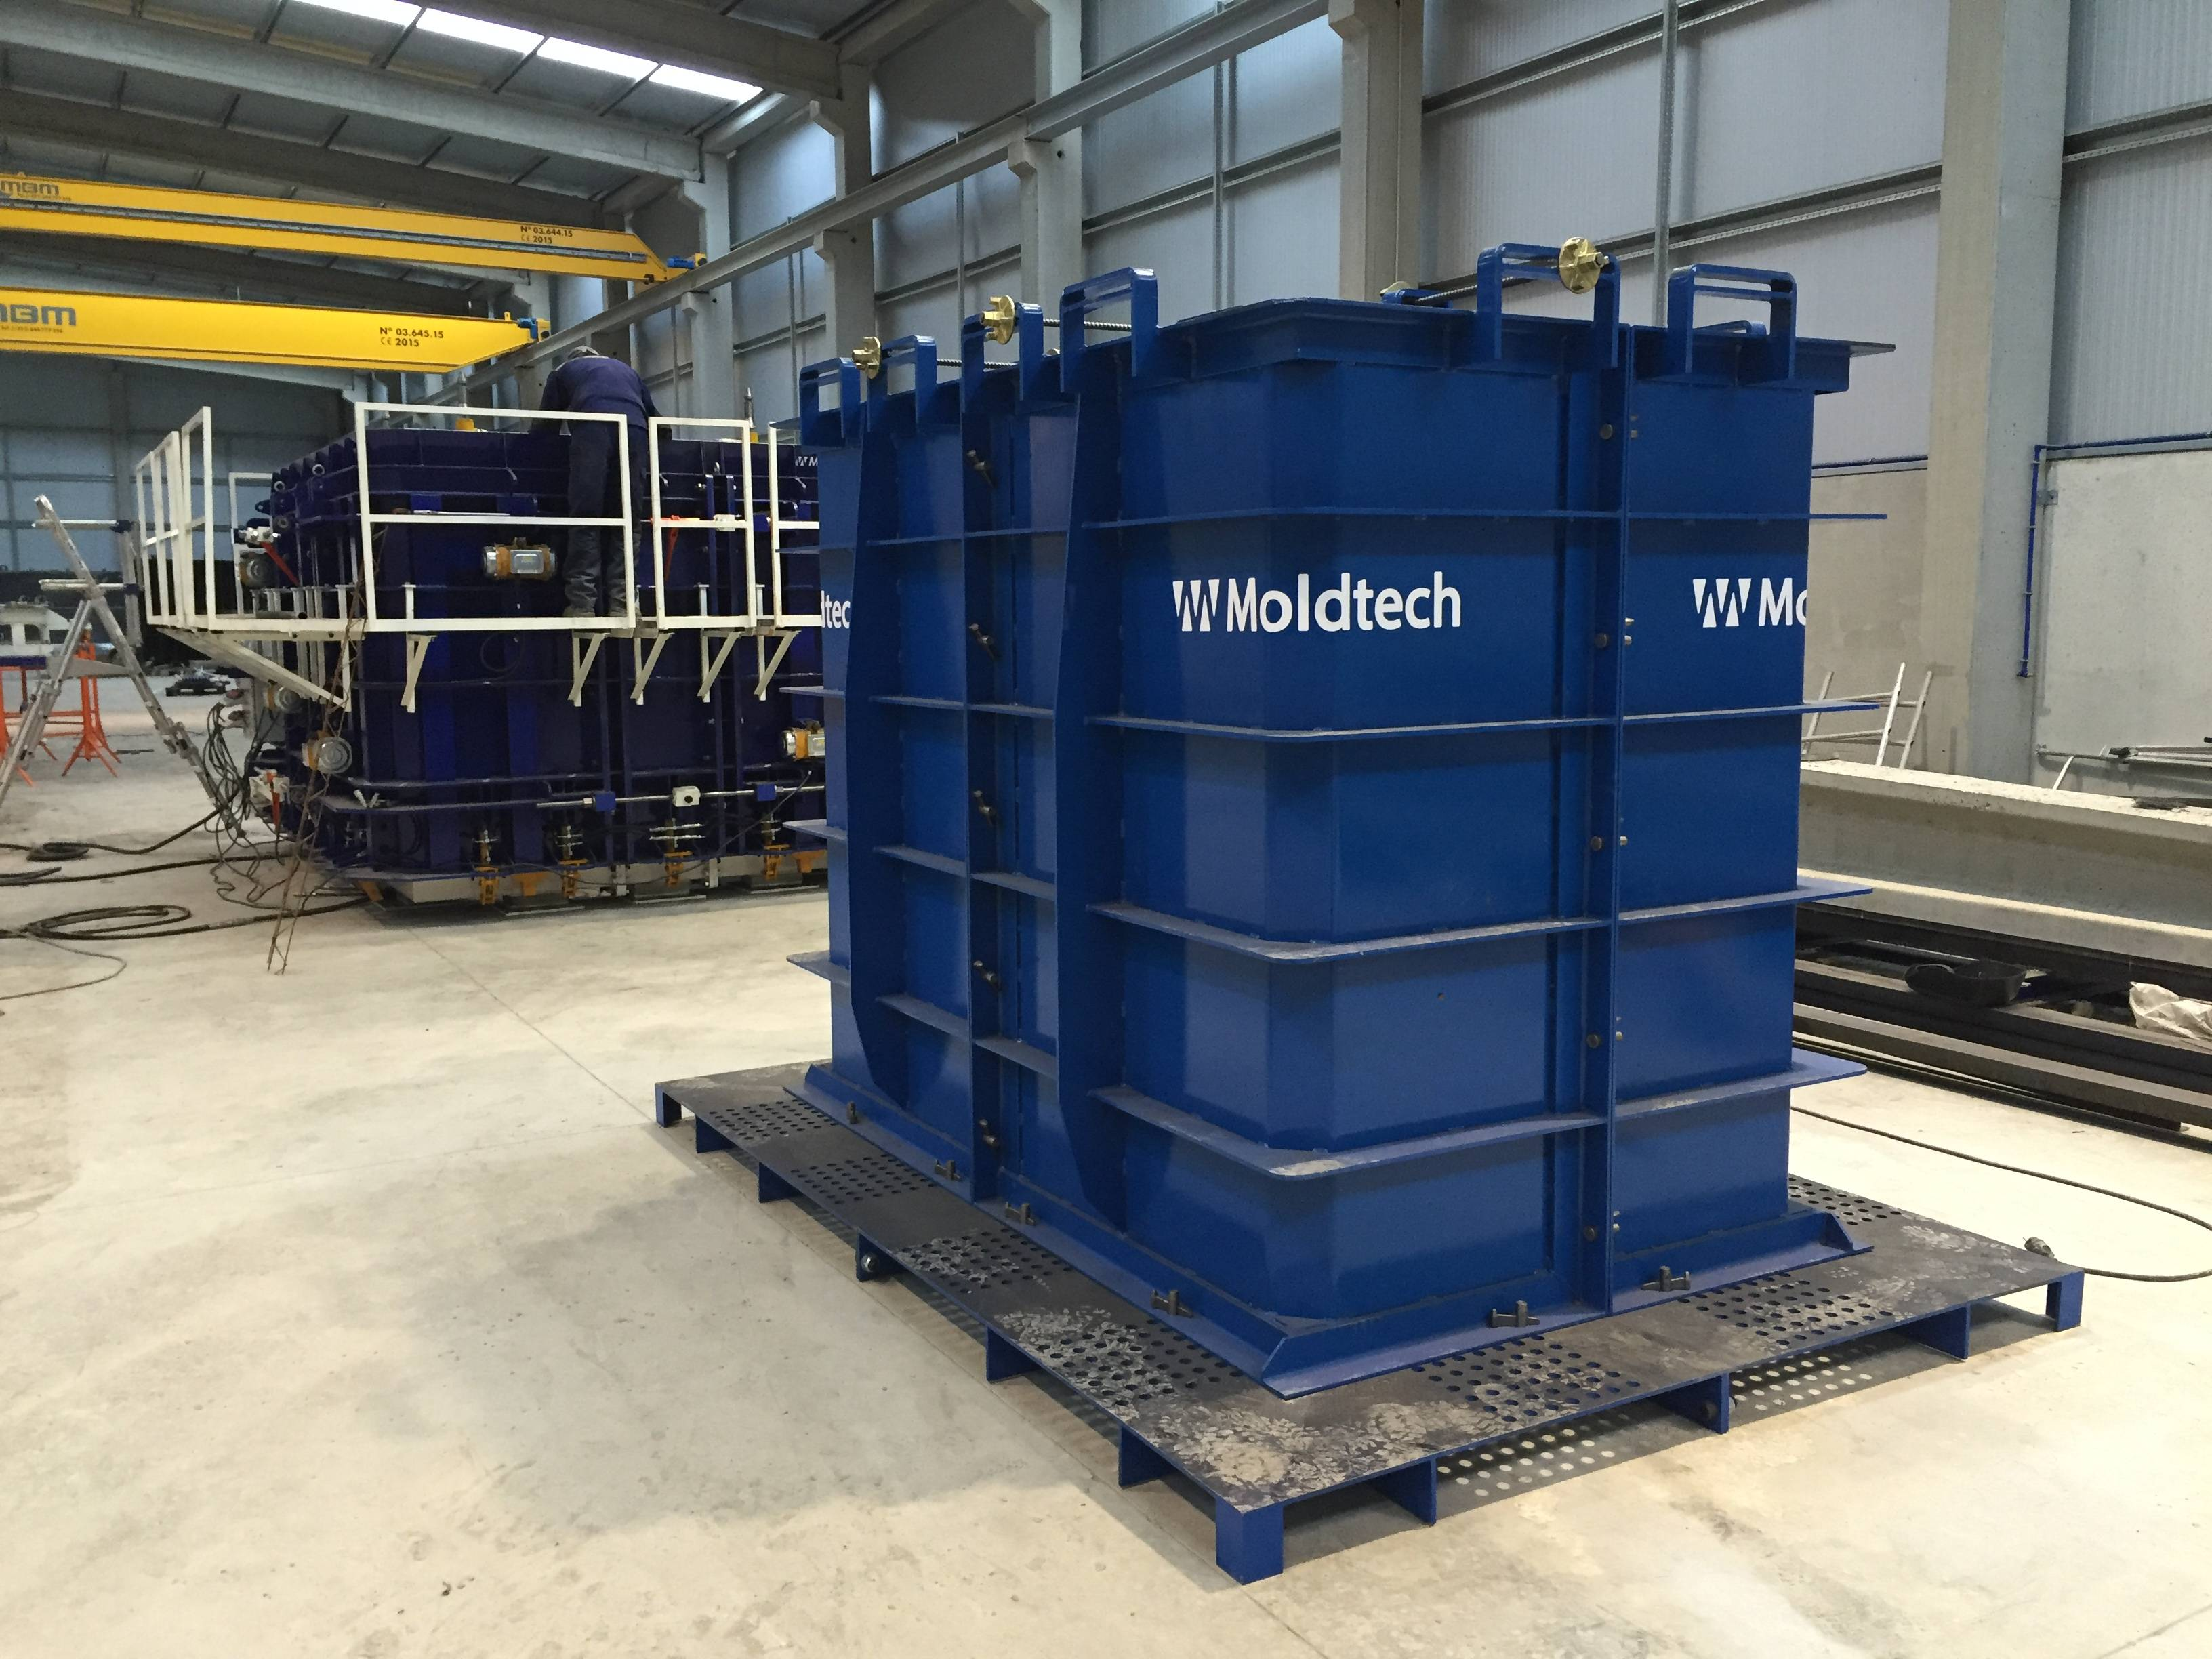 marcos modulares wet cast